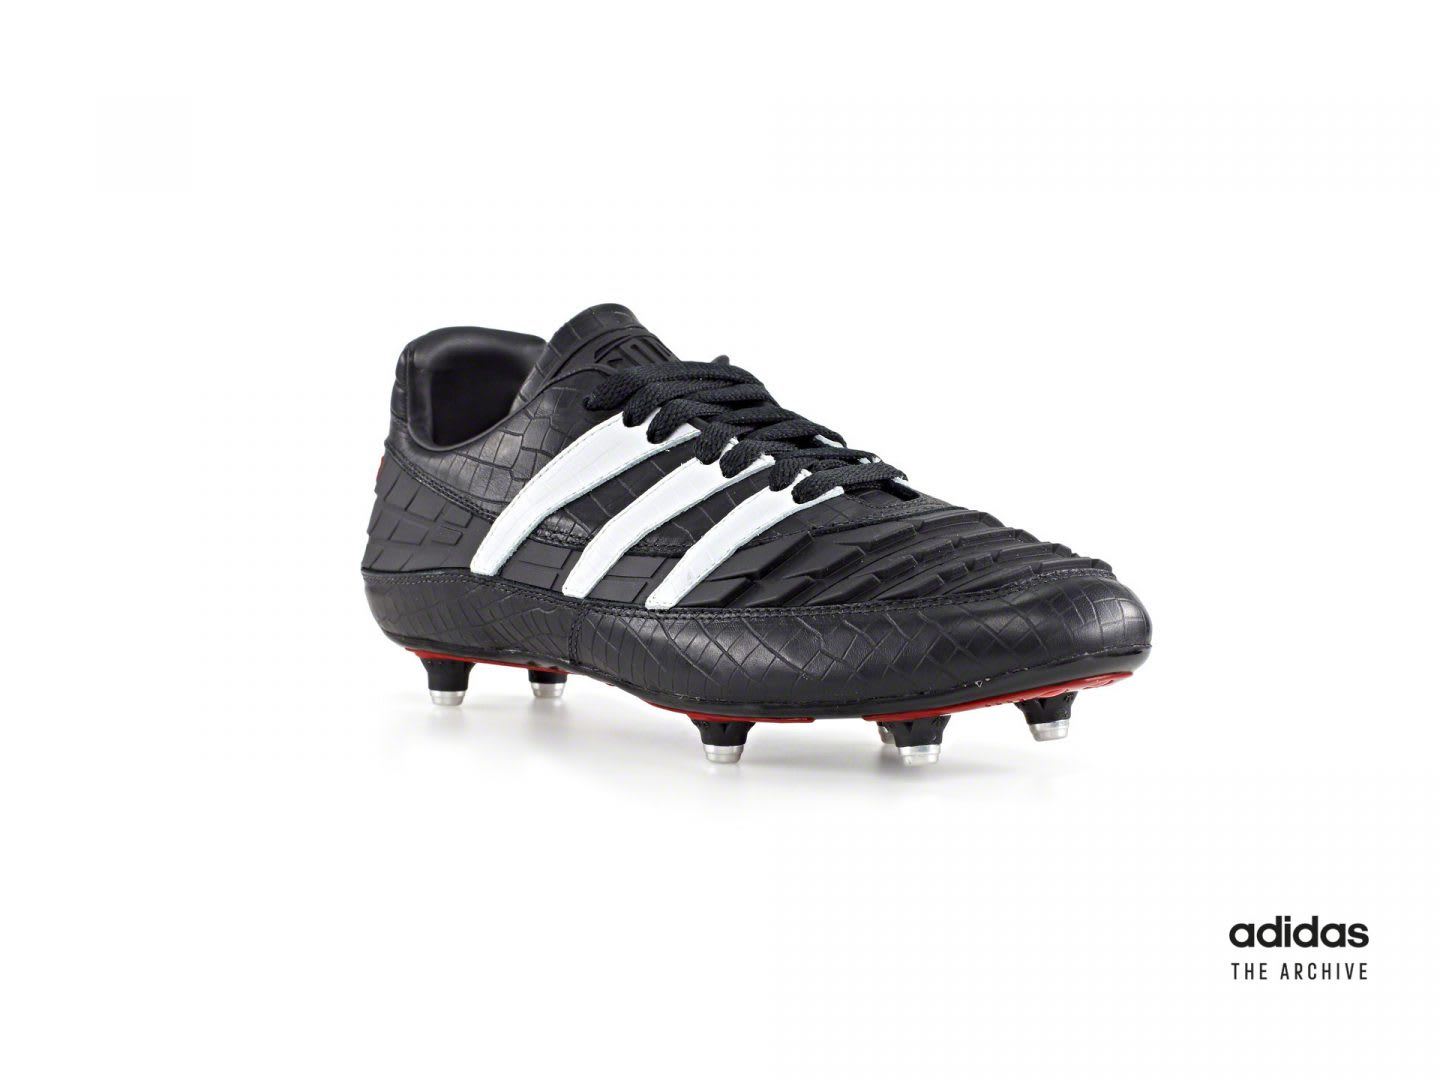 Black and white football boot, cleats, adidas, sports, soccer, history, product